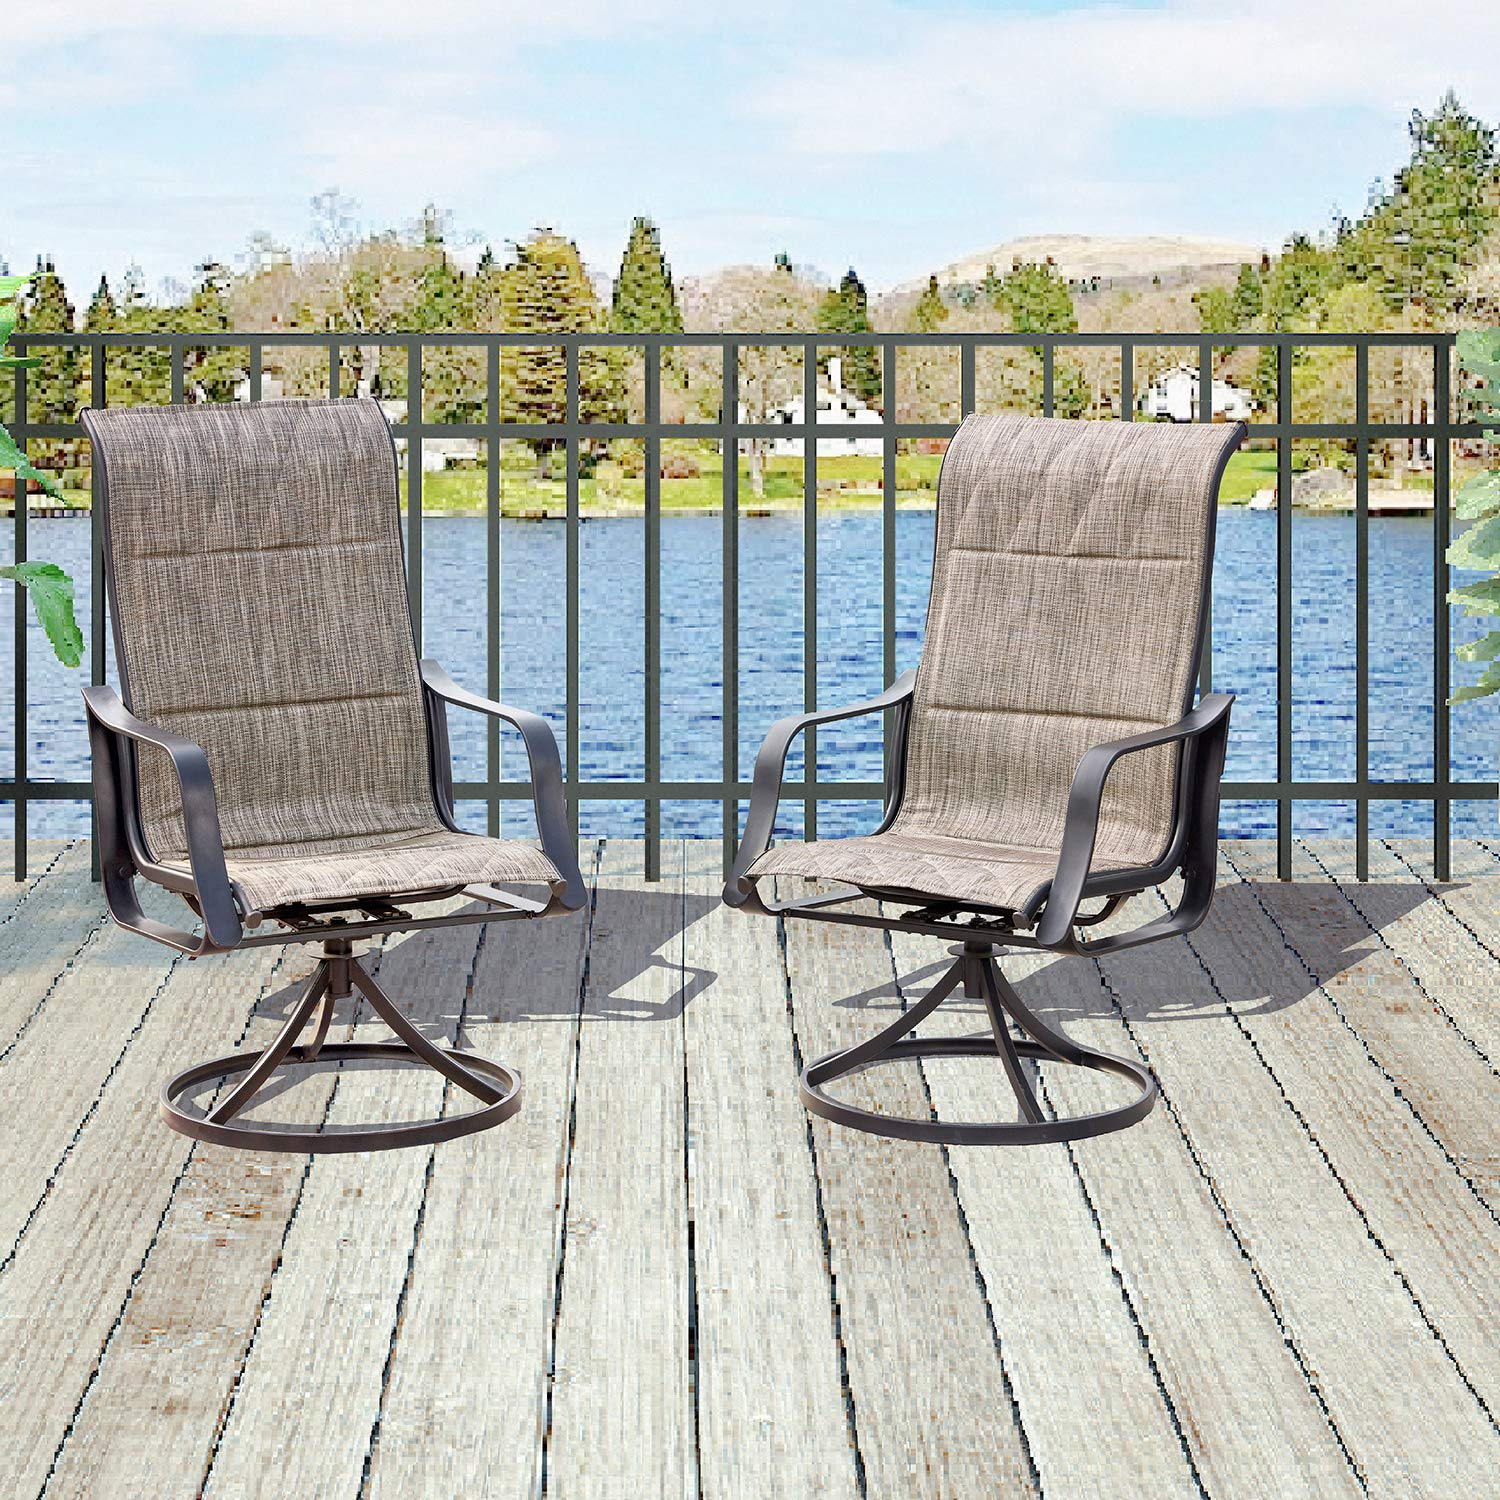 Top Space 2 Piece Swivel Bar Stools Outdoor High Patio Chairs Furniture with All Weather Metal Frame (2 Bar Chairs,Grey) by Top Space